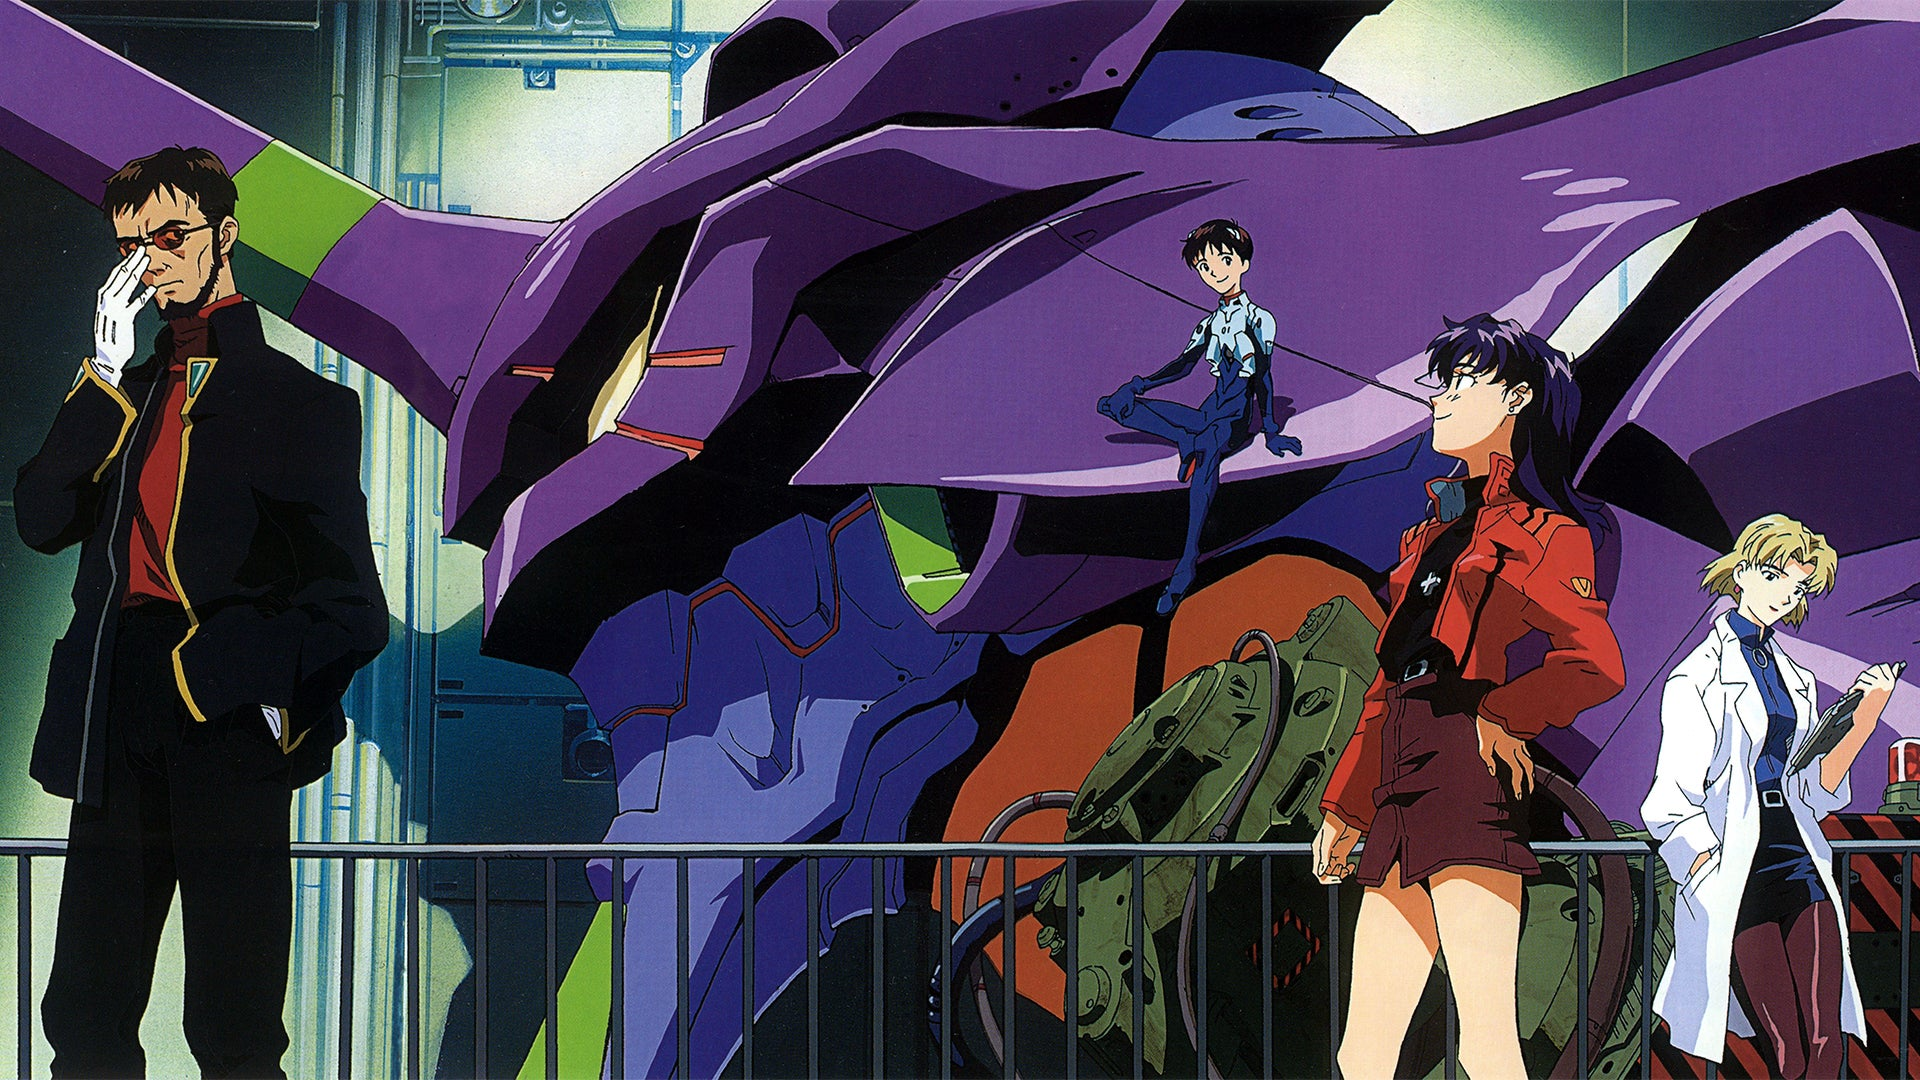 The Netflix Release Of Neon Genesis Evangelion Is Missing Its Iconic Ending Theme